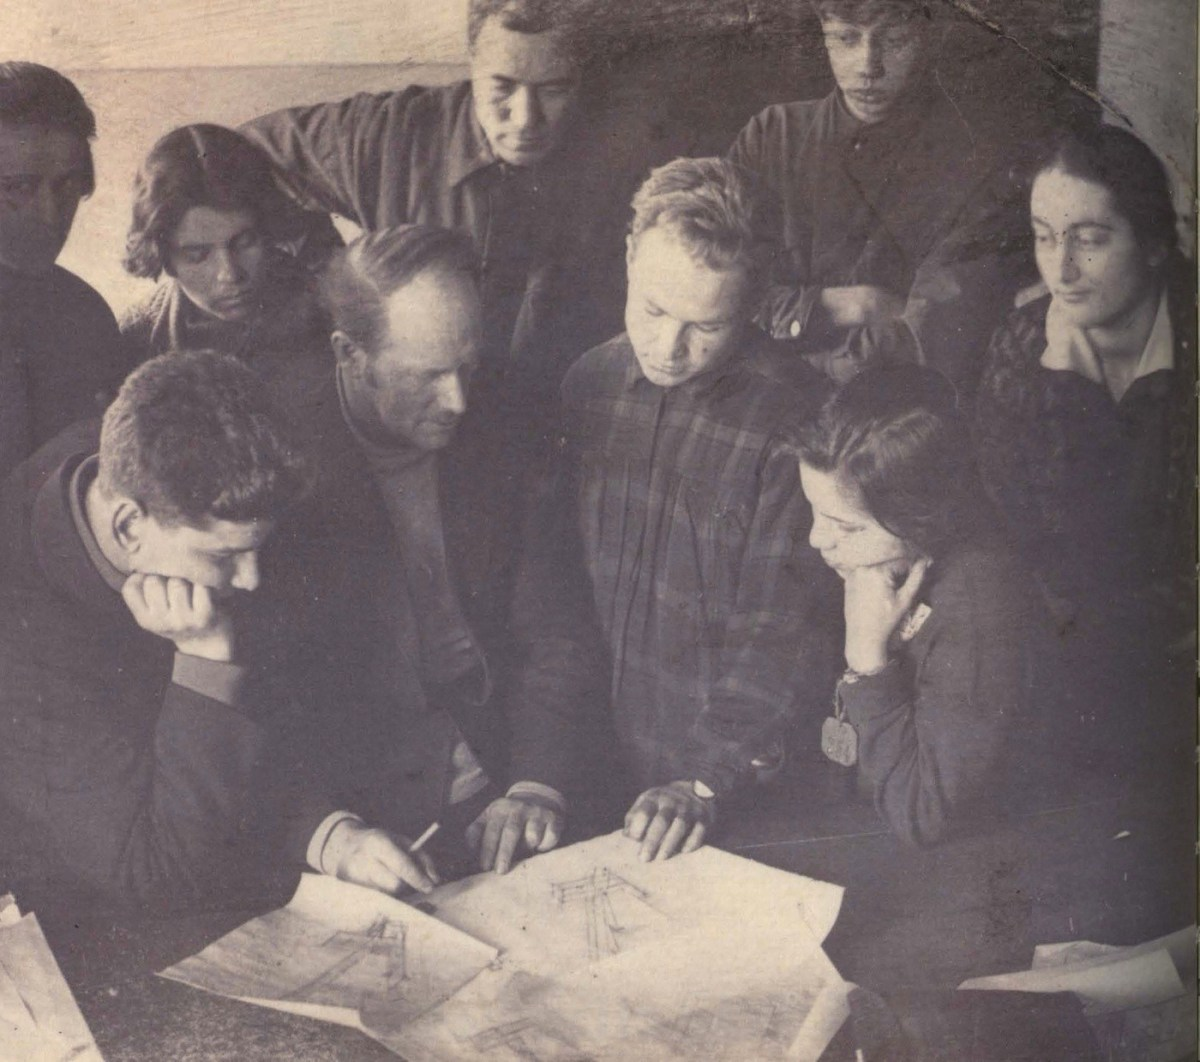 Nikolai Ladovskii with students